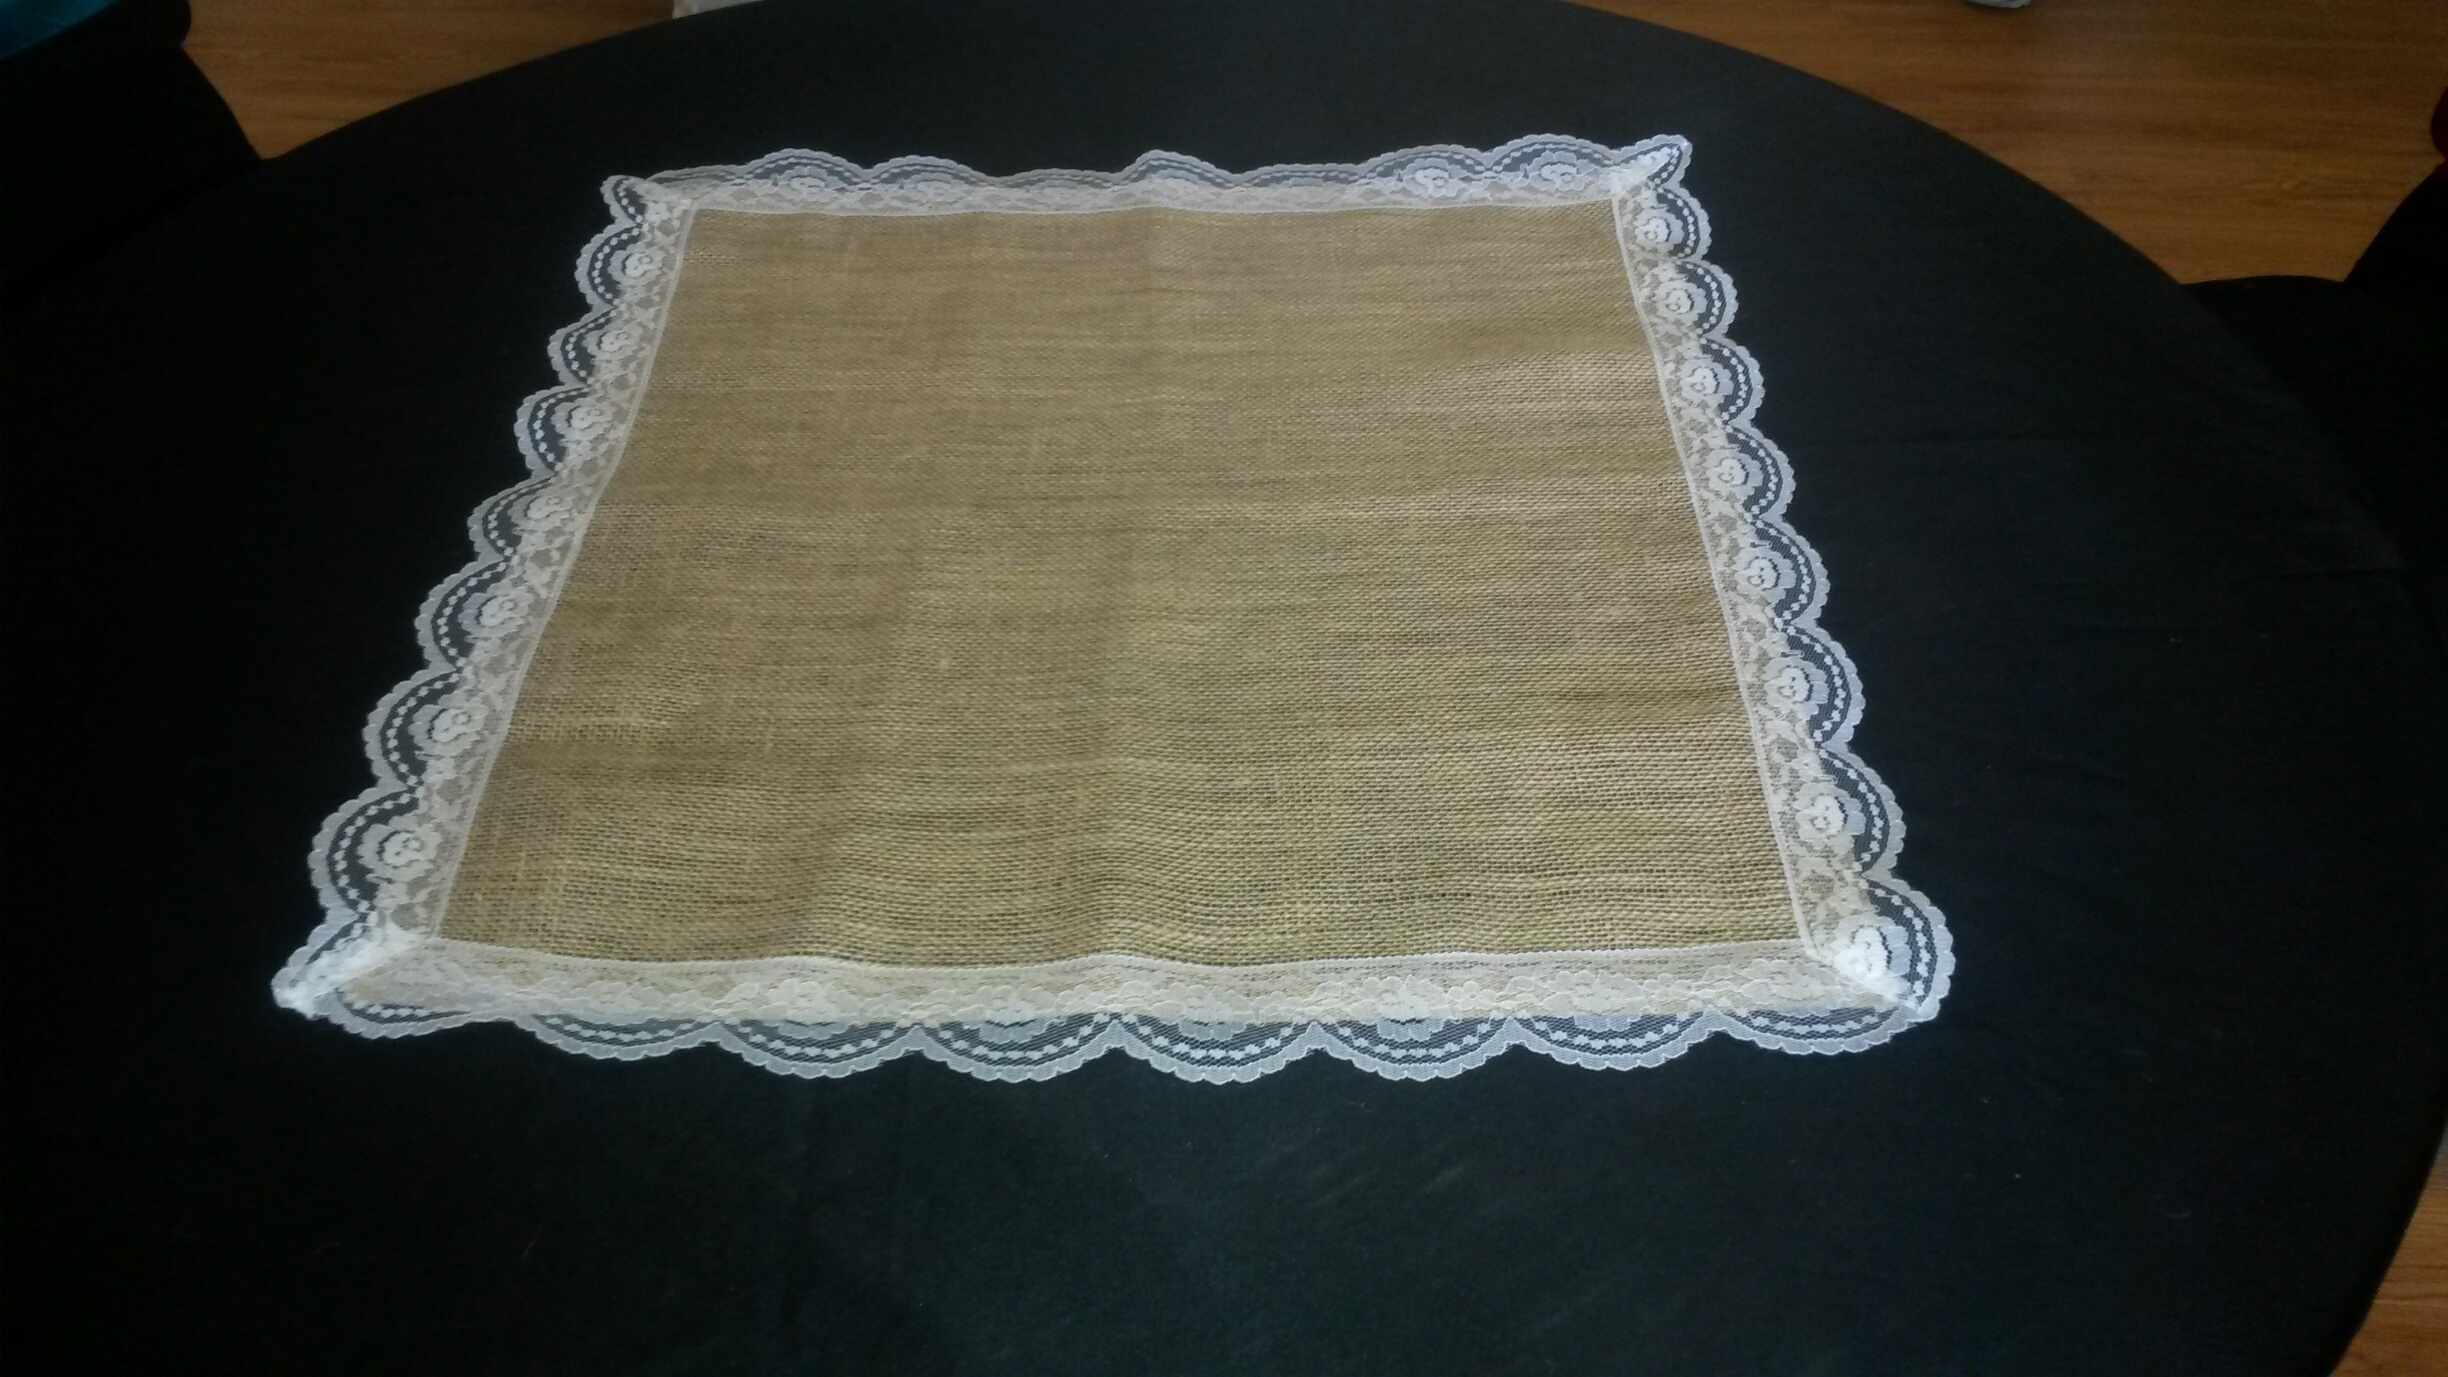 Burlap Napkins With Lace (12 Pk)